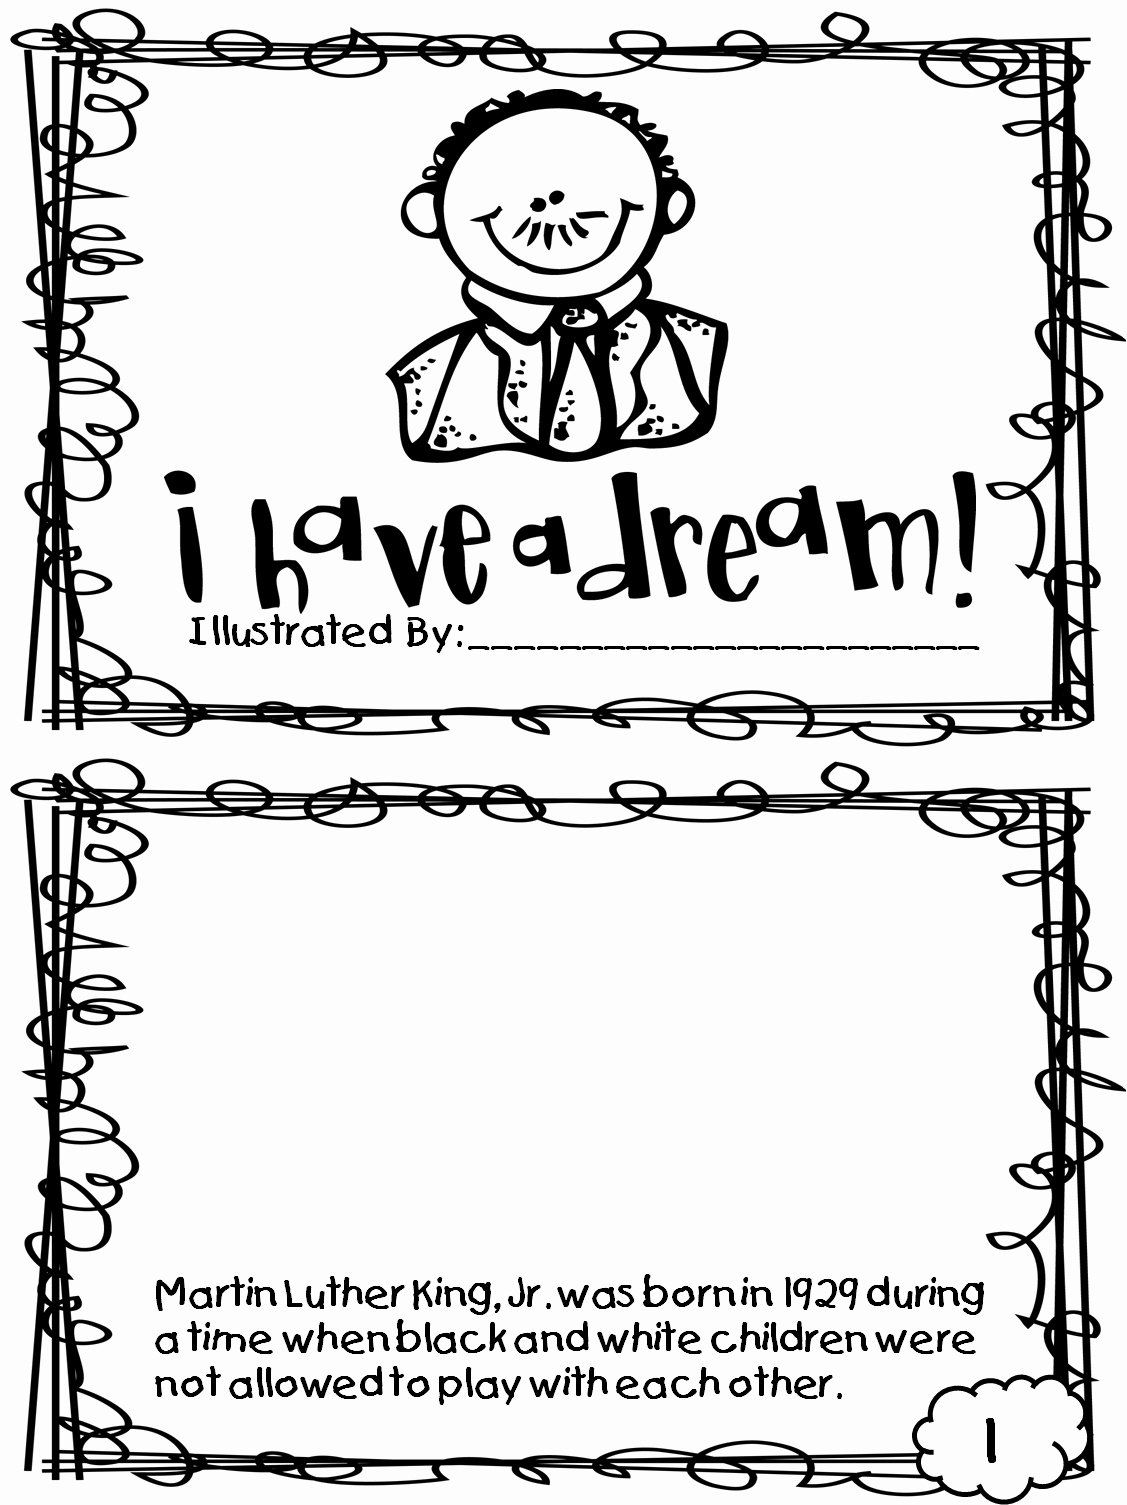 Martin Luther King Worksheets for Preschoolers Unique Martin Luther King Jr Dream Worksheet Coloring Pages